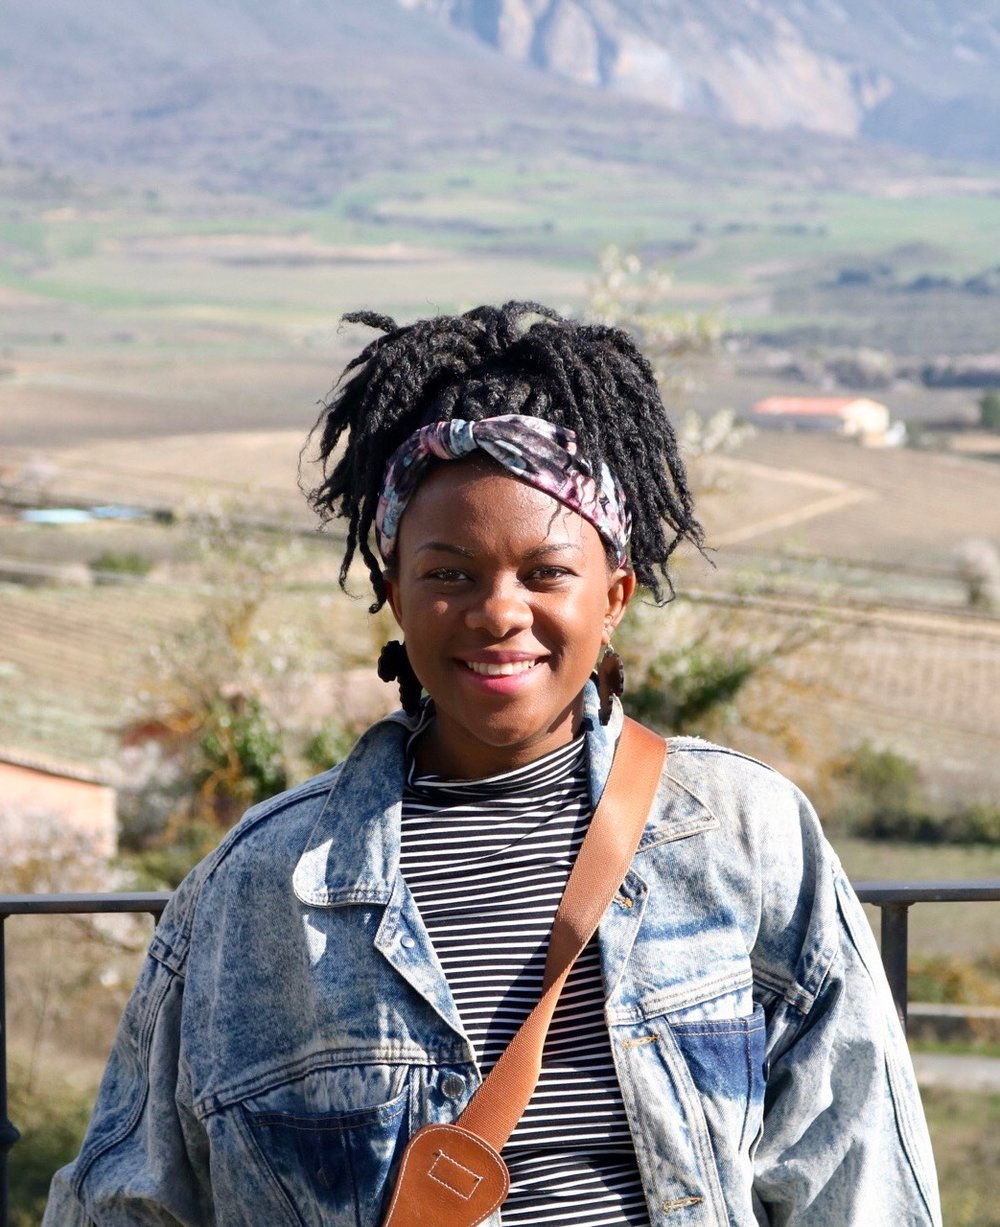 Sojourner   Sojourner received her first journal before she could even spell her own name— and she hasn't stopped writing since. After a semester in Spain re-ignited this passion, through the lens of travel, she launched her blog  sojournies.com . Inspired to learn more, Sojourner returned to teach English with the Fulbright Program in their wine-making region of La Rioja. Making friends, learning new languages, and embracing all cultures no matter where she lands, Sojourner plans to live up to her name by traveling and blogging her way through the world, one wine glass and journal entry at a time.